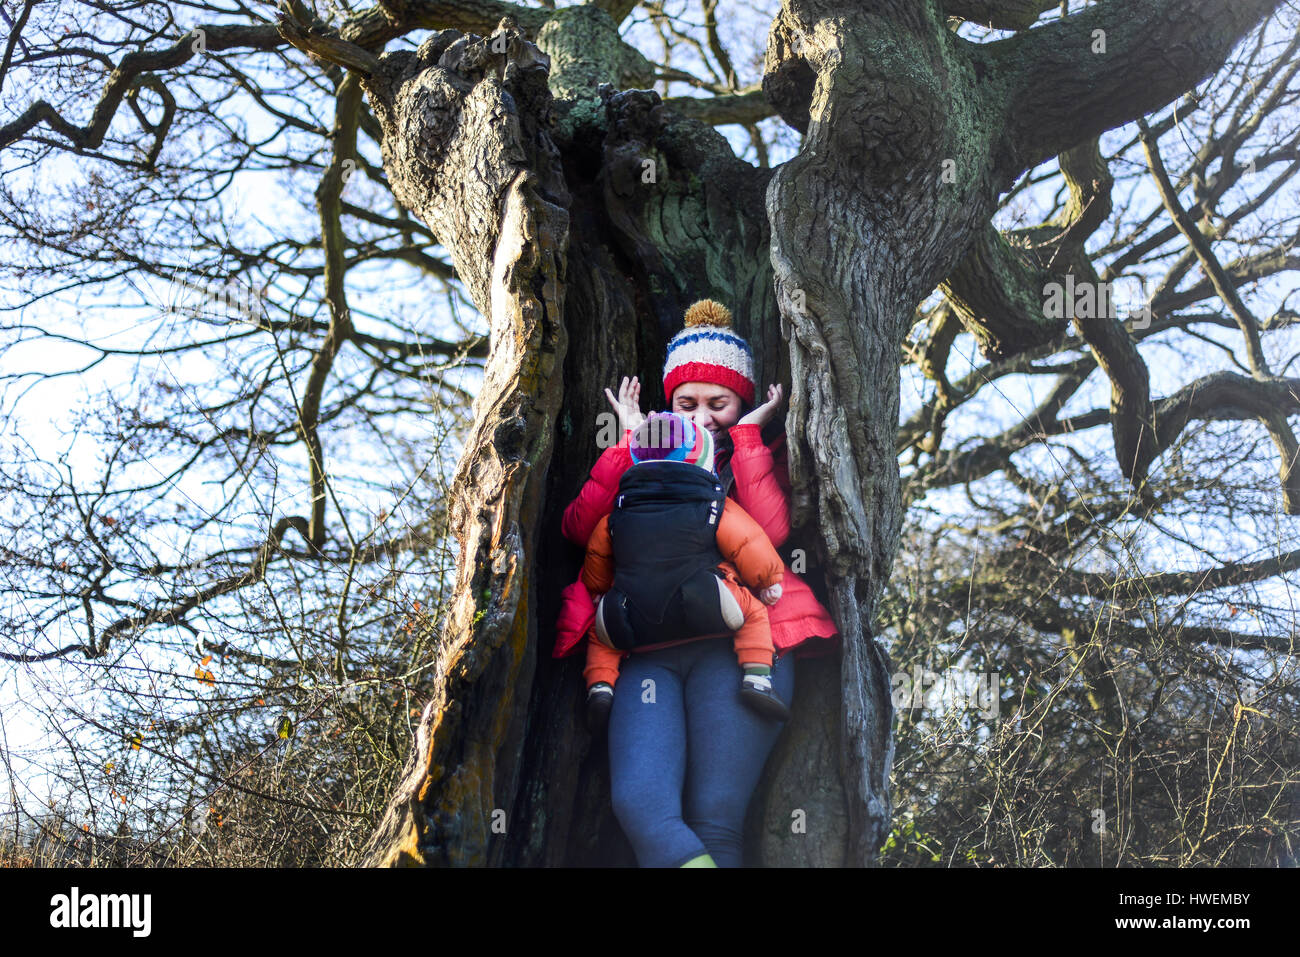 Woman in hollow tree, carrying young baby in sling - Stock Image